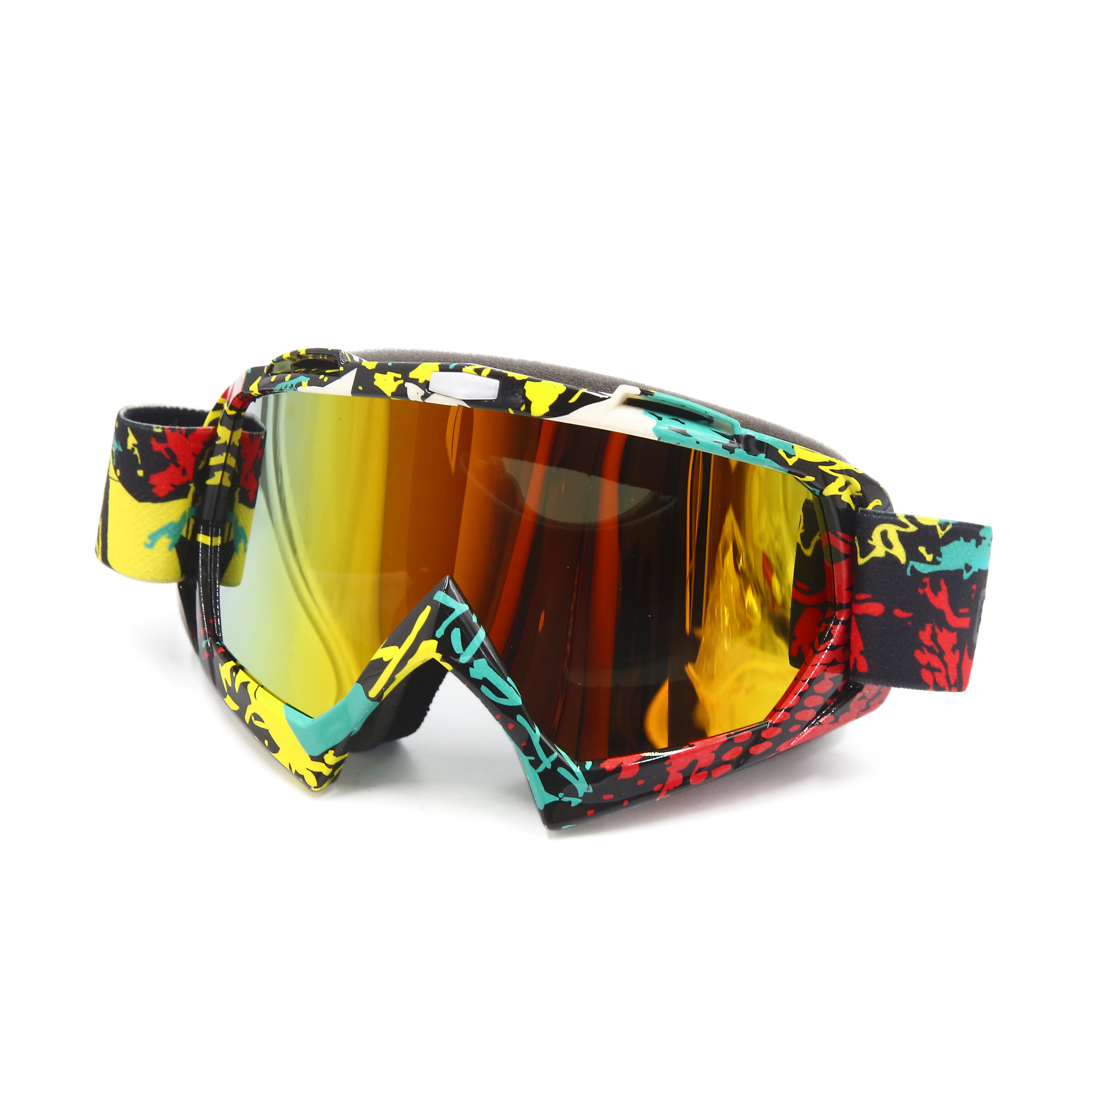 Colorful Plastic Lens Windproof Outdoor Goggles for Motorcycle Motocross